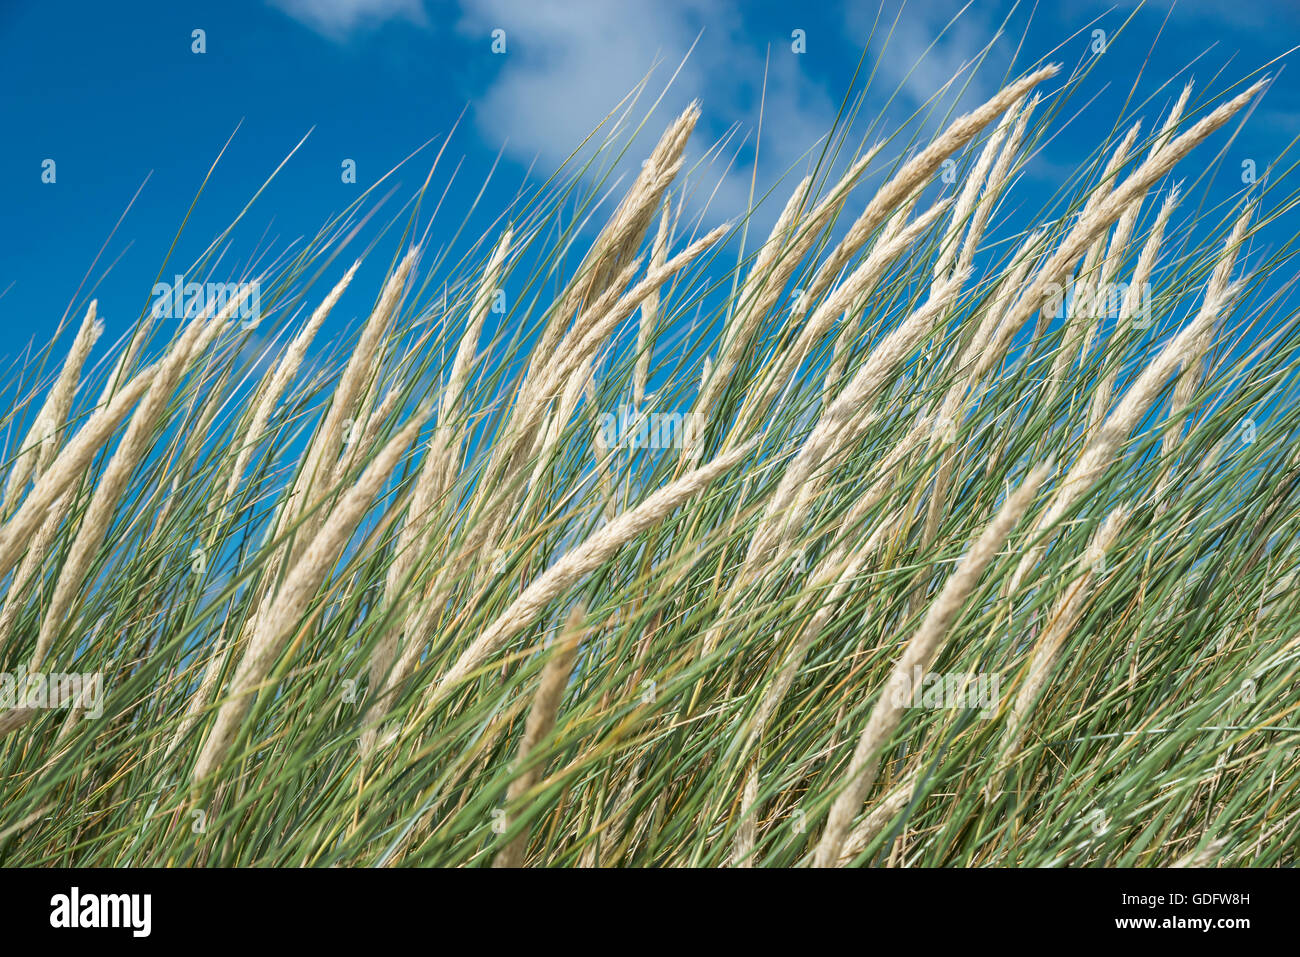 Close up of flowering dune grasses in bright sunshine. Taken at Formby point on the coast of northwest England. - Stock Image